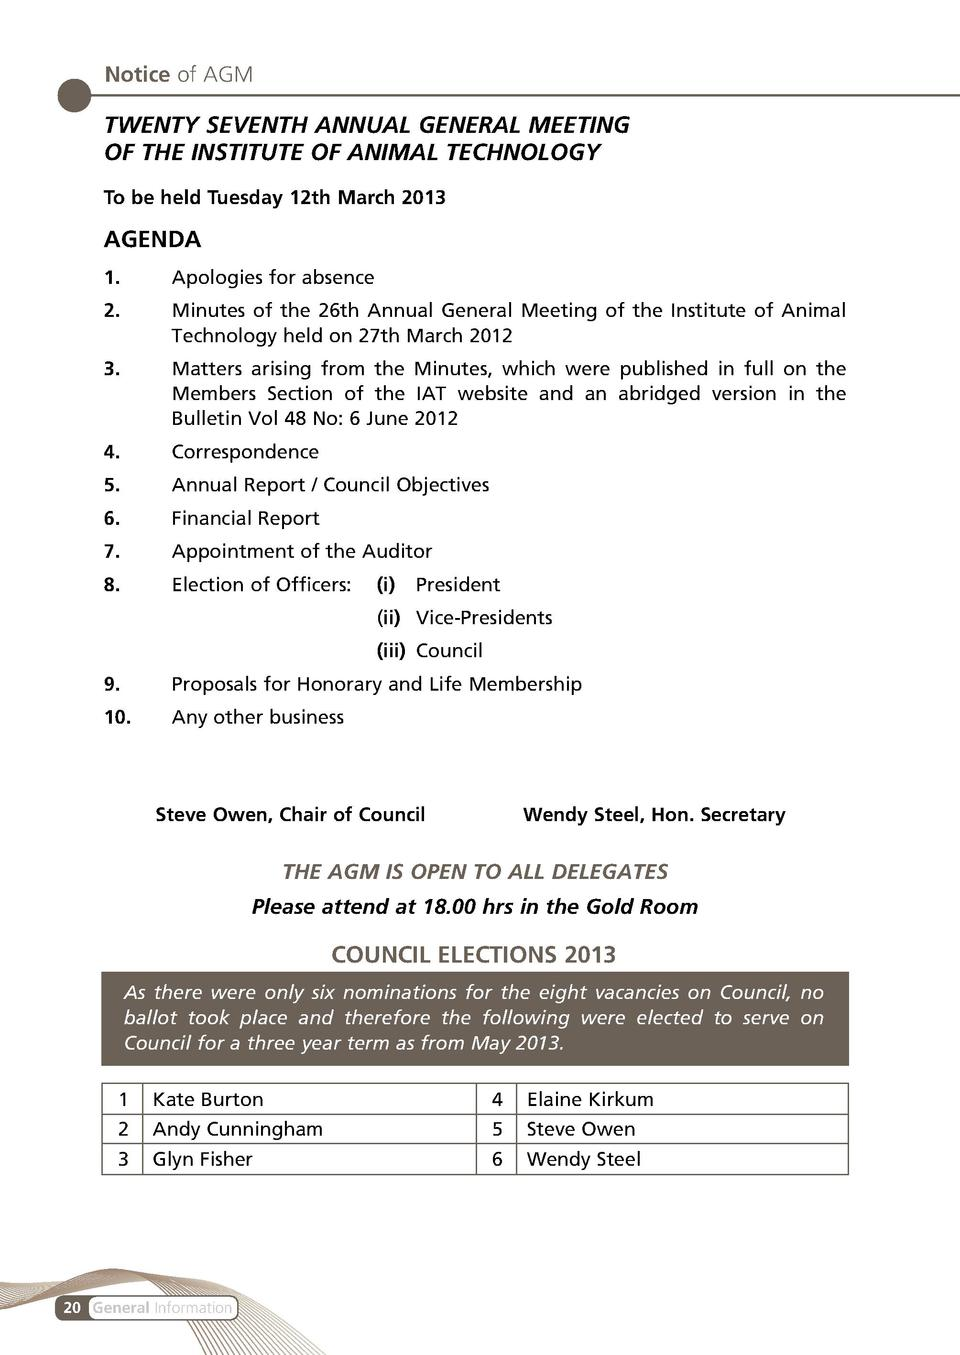 Notice of AGM  TWENTY SEVENTH ANNUAL GENERAL MEETING OF THE INSTITUTE OF ANIMAL TECHNOLOGY To be held Tuesday 12th March 2...